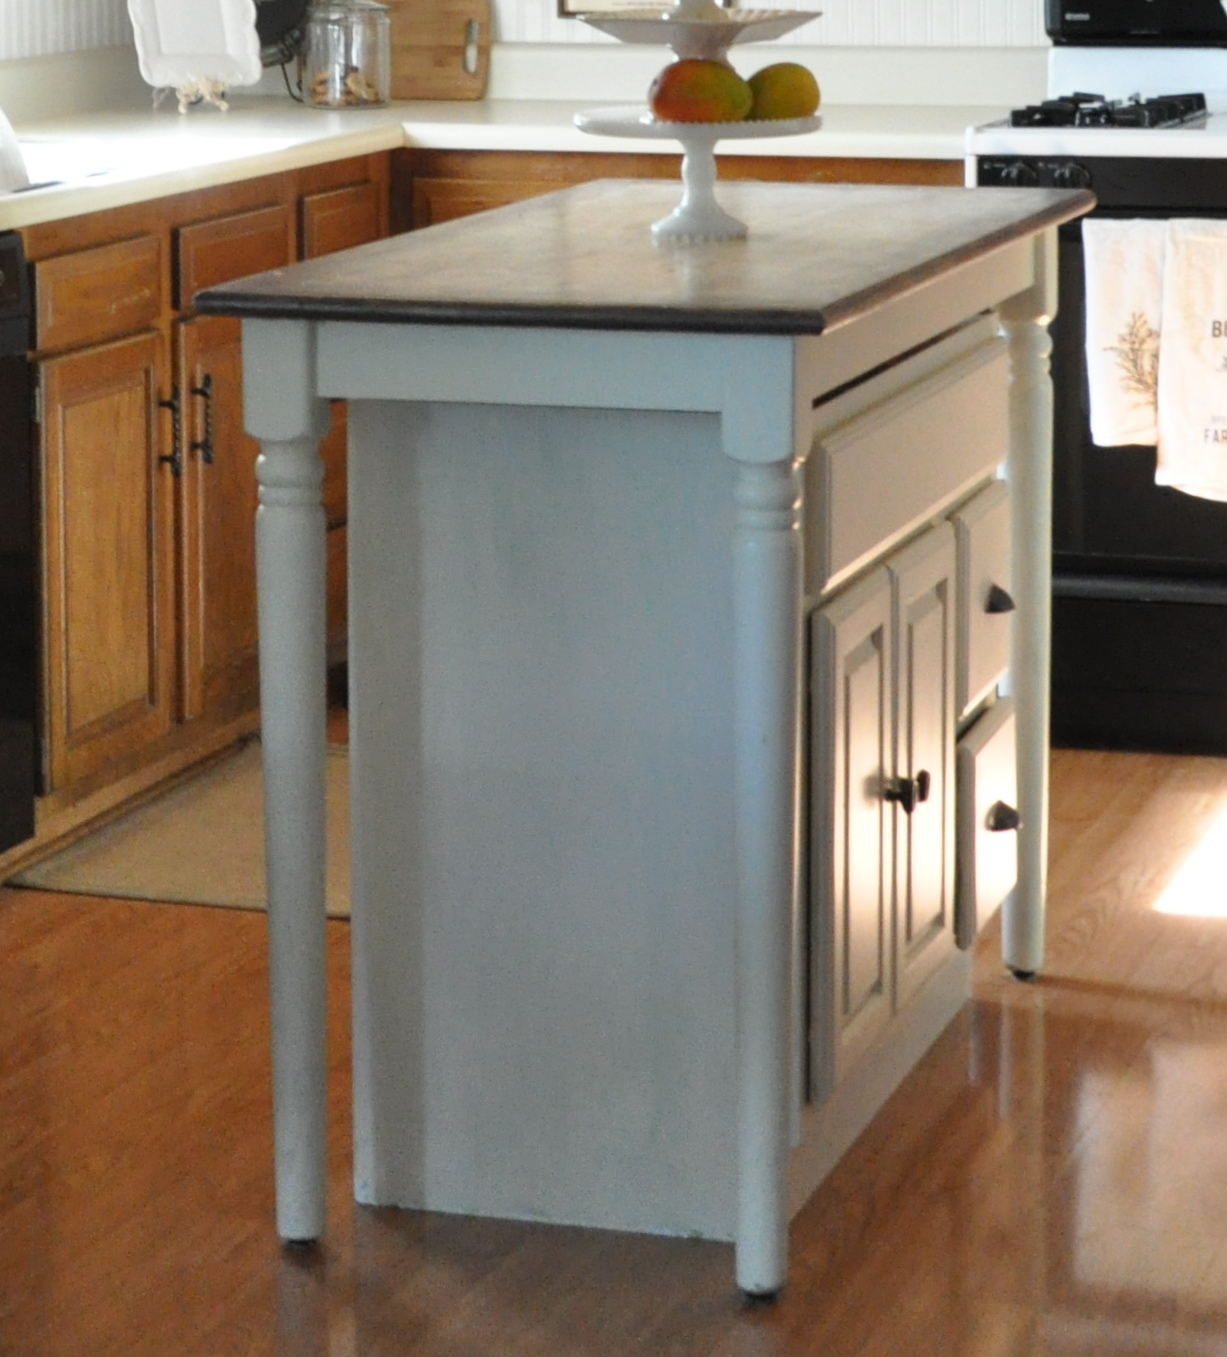 Building Kitchen Islands Degreaser For Wood Cabinets A Island Jennifer Rizzo